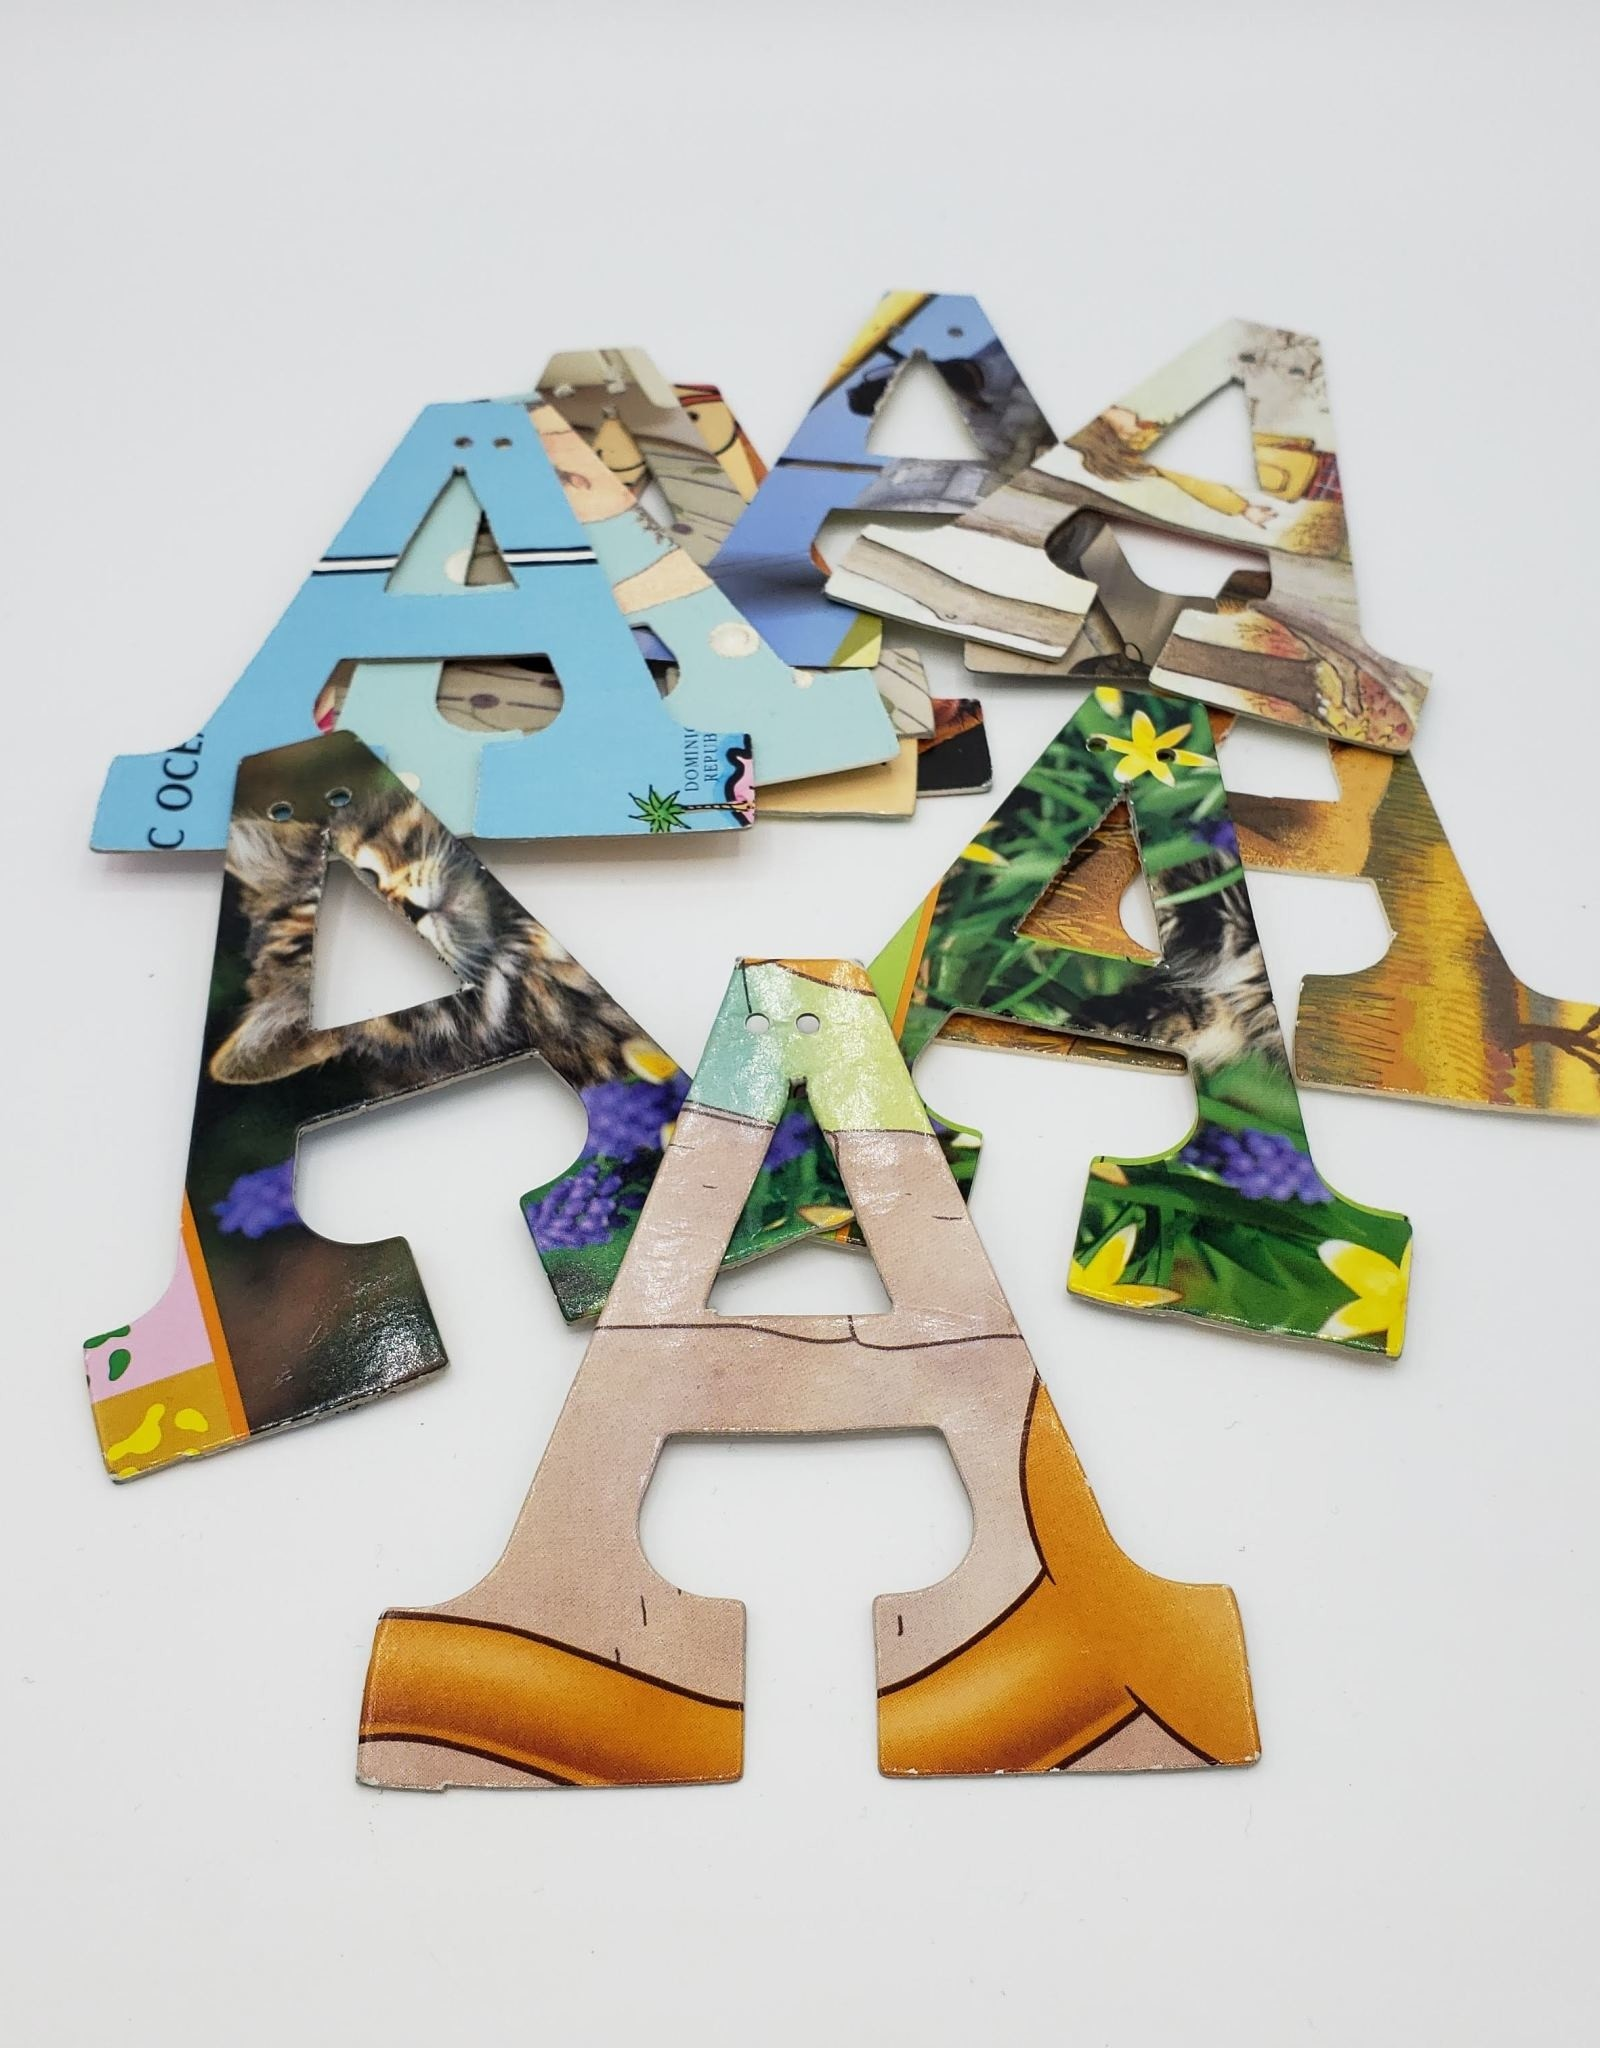 Attic Journals Garland Letters (A-I) - Recycled Books - Attic Journals